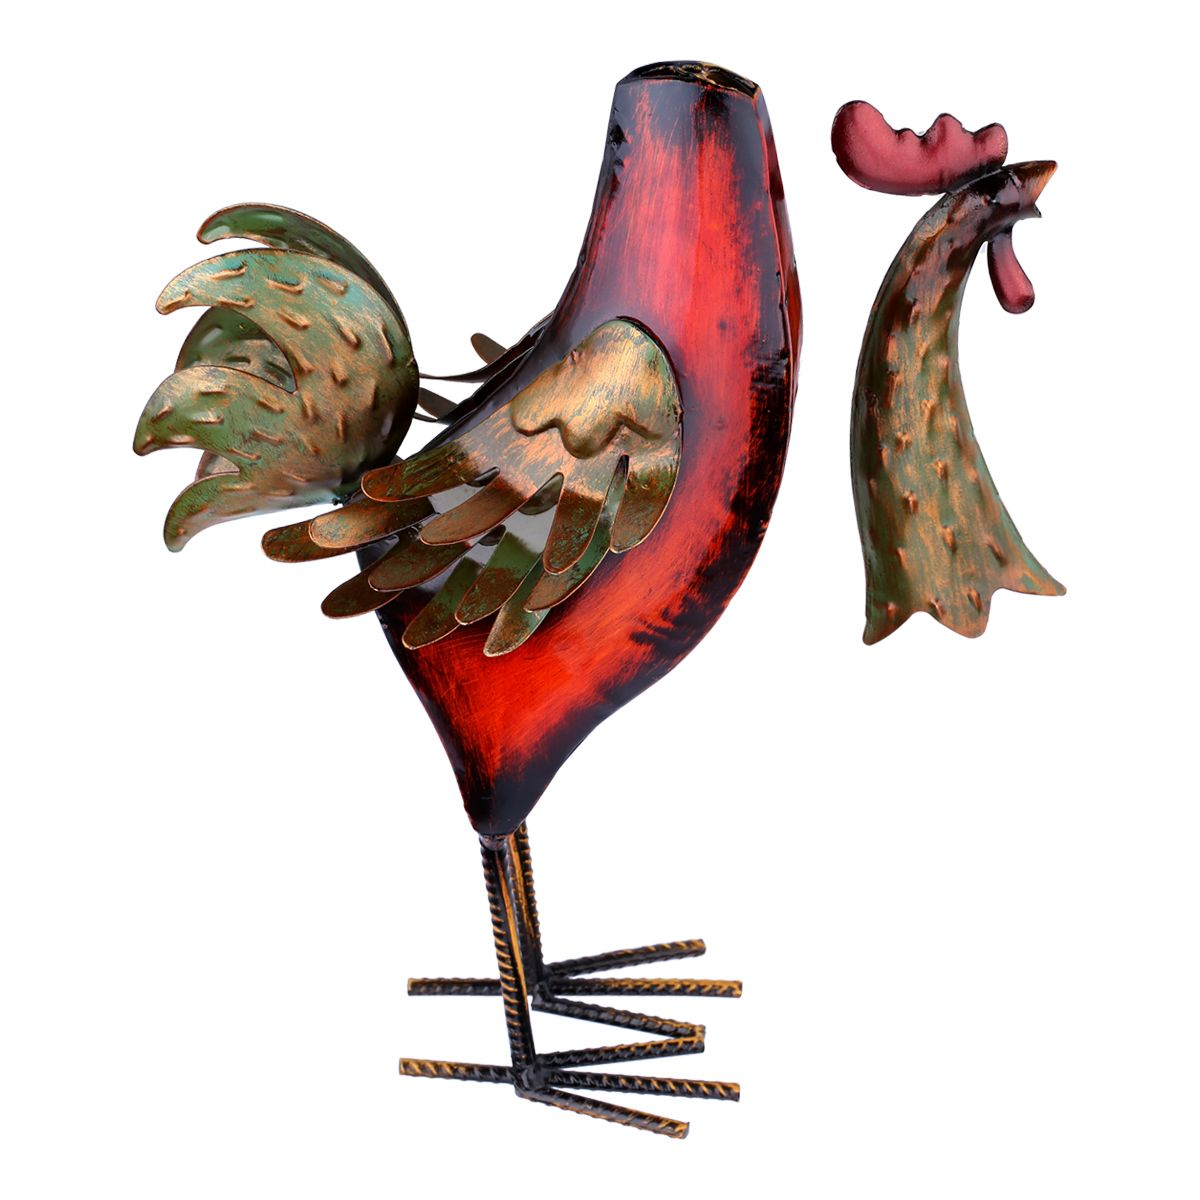 Tooarts Concise Vivid Metal Sculpture Multicolor Iron Rooster Handmade Sculpture Home Furnishing Articles Crafts Decoration